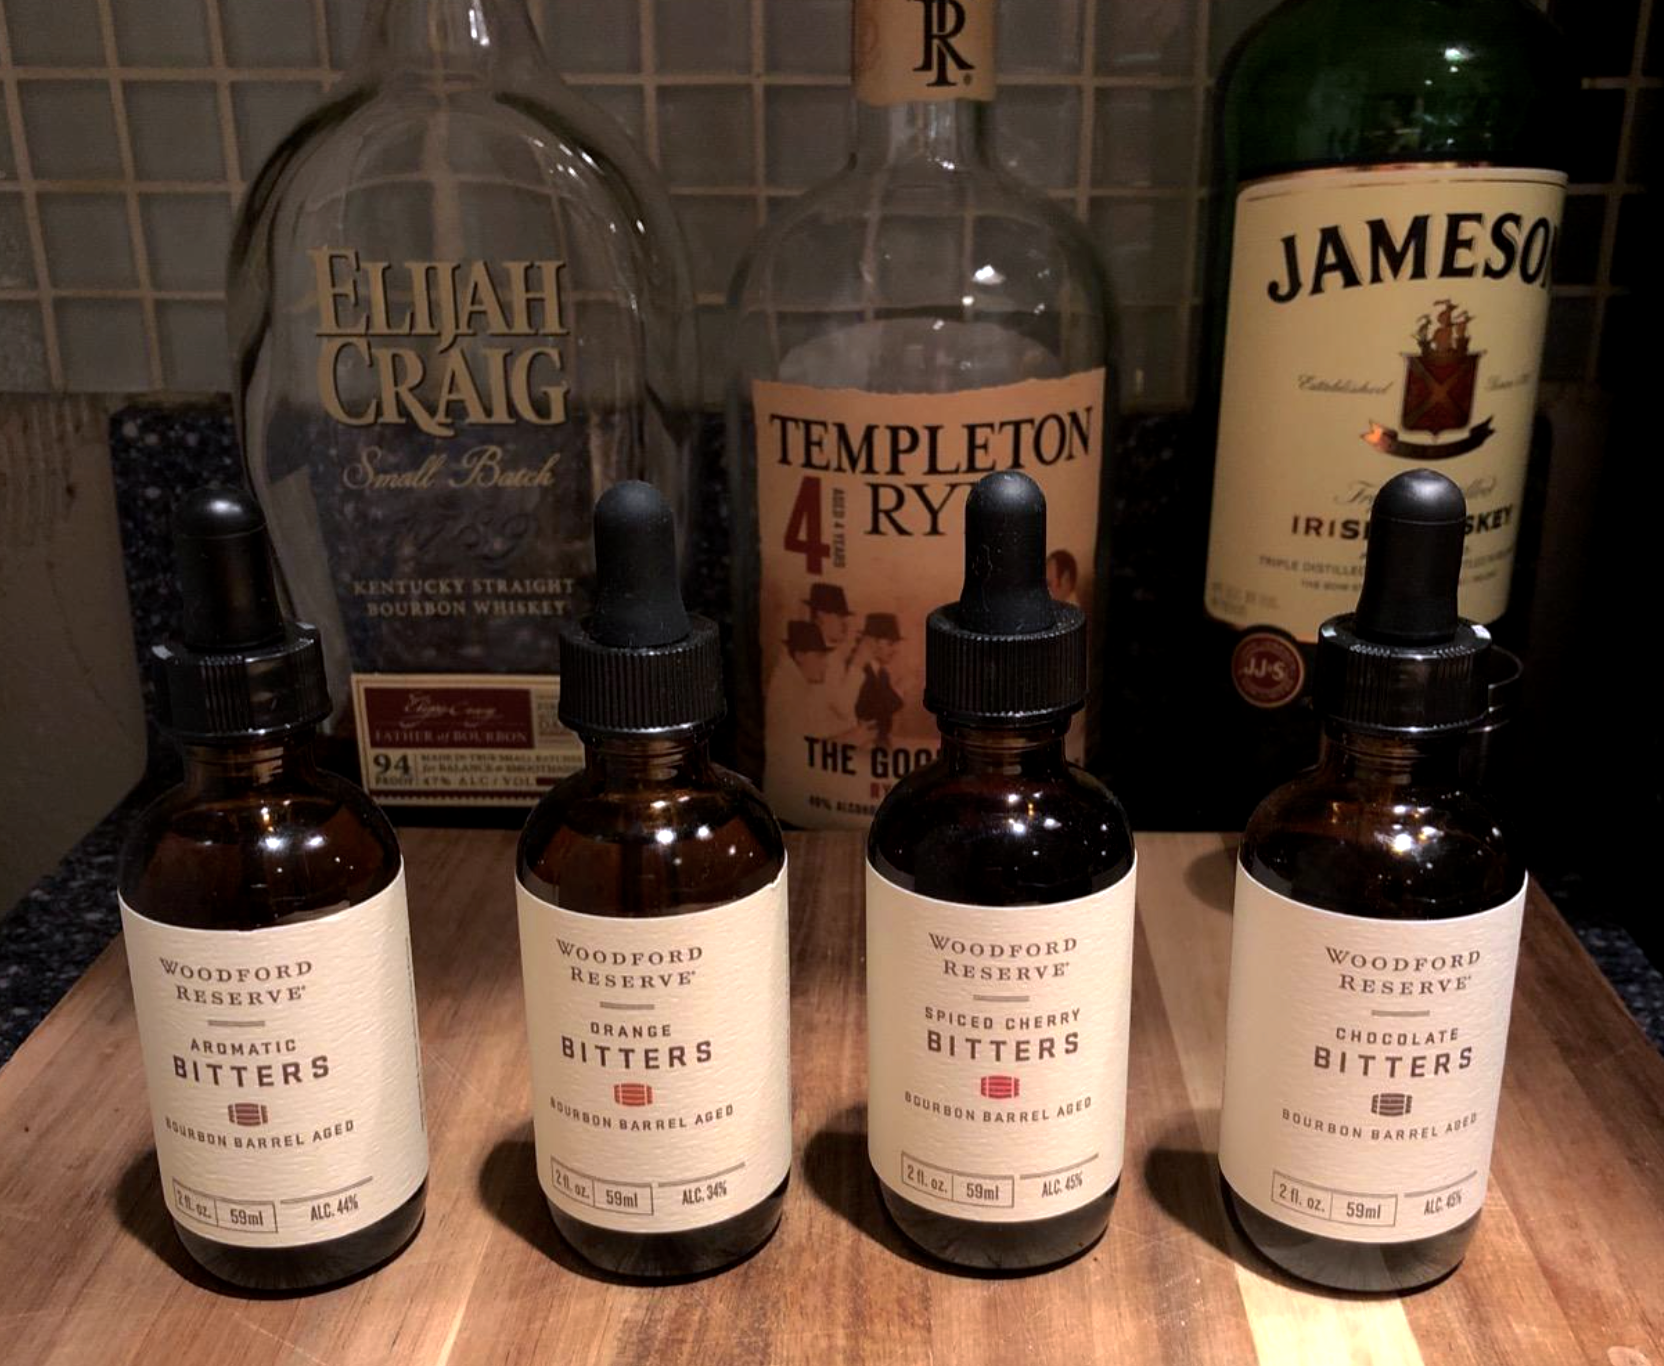 reviewer image of bitters laid out next to bottles of whiskey